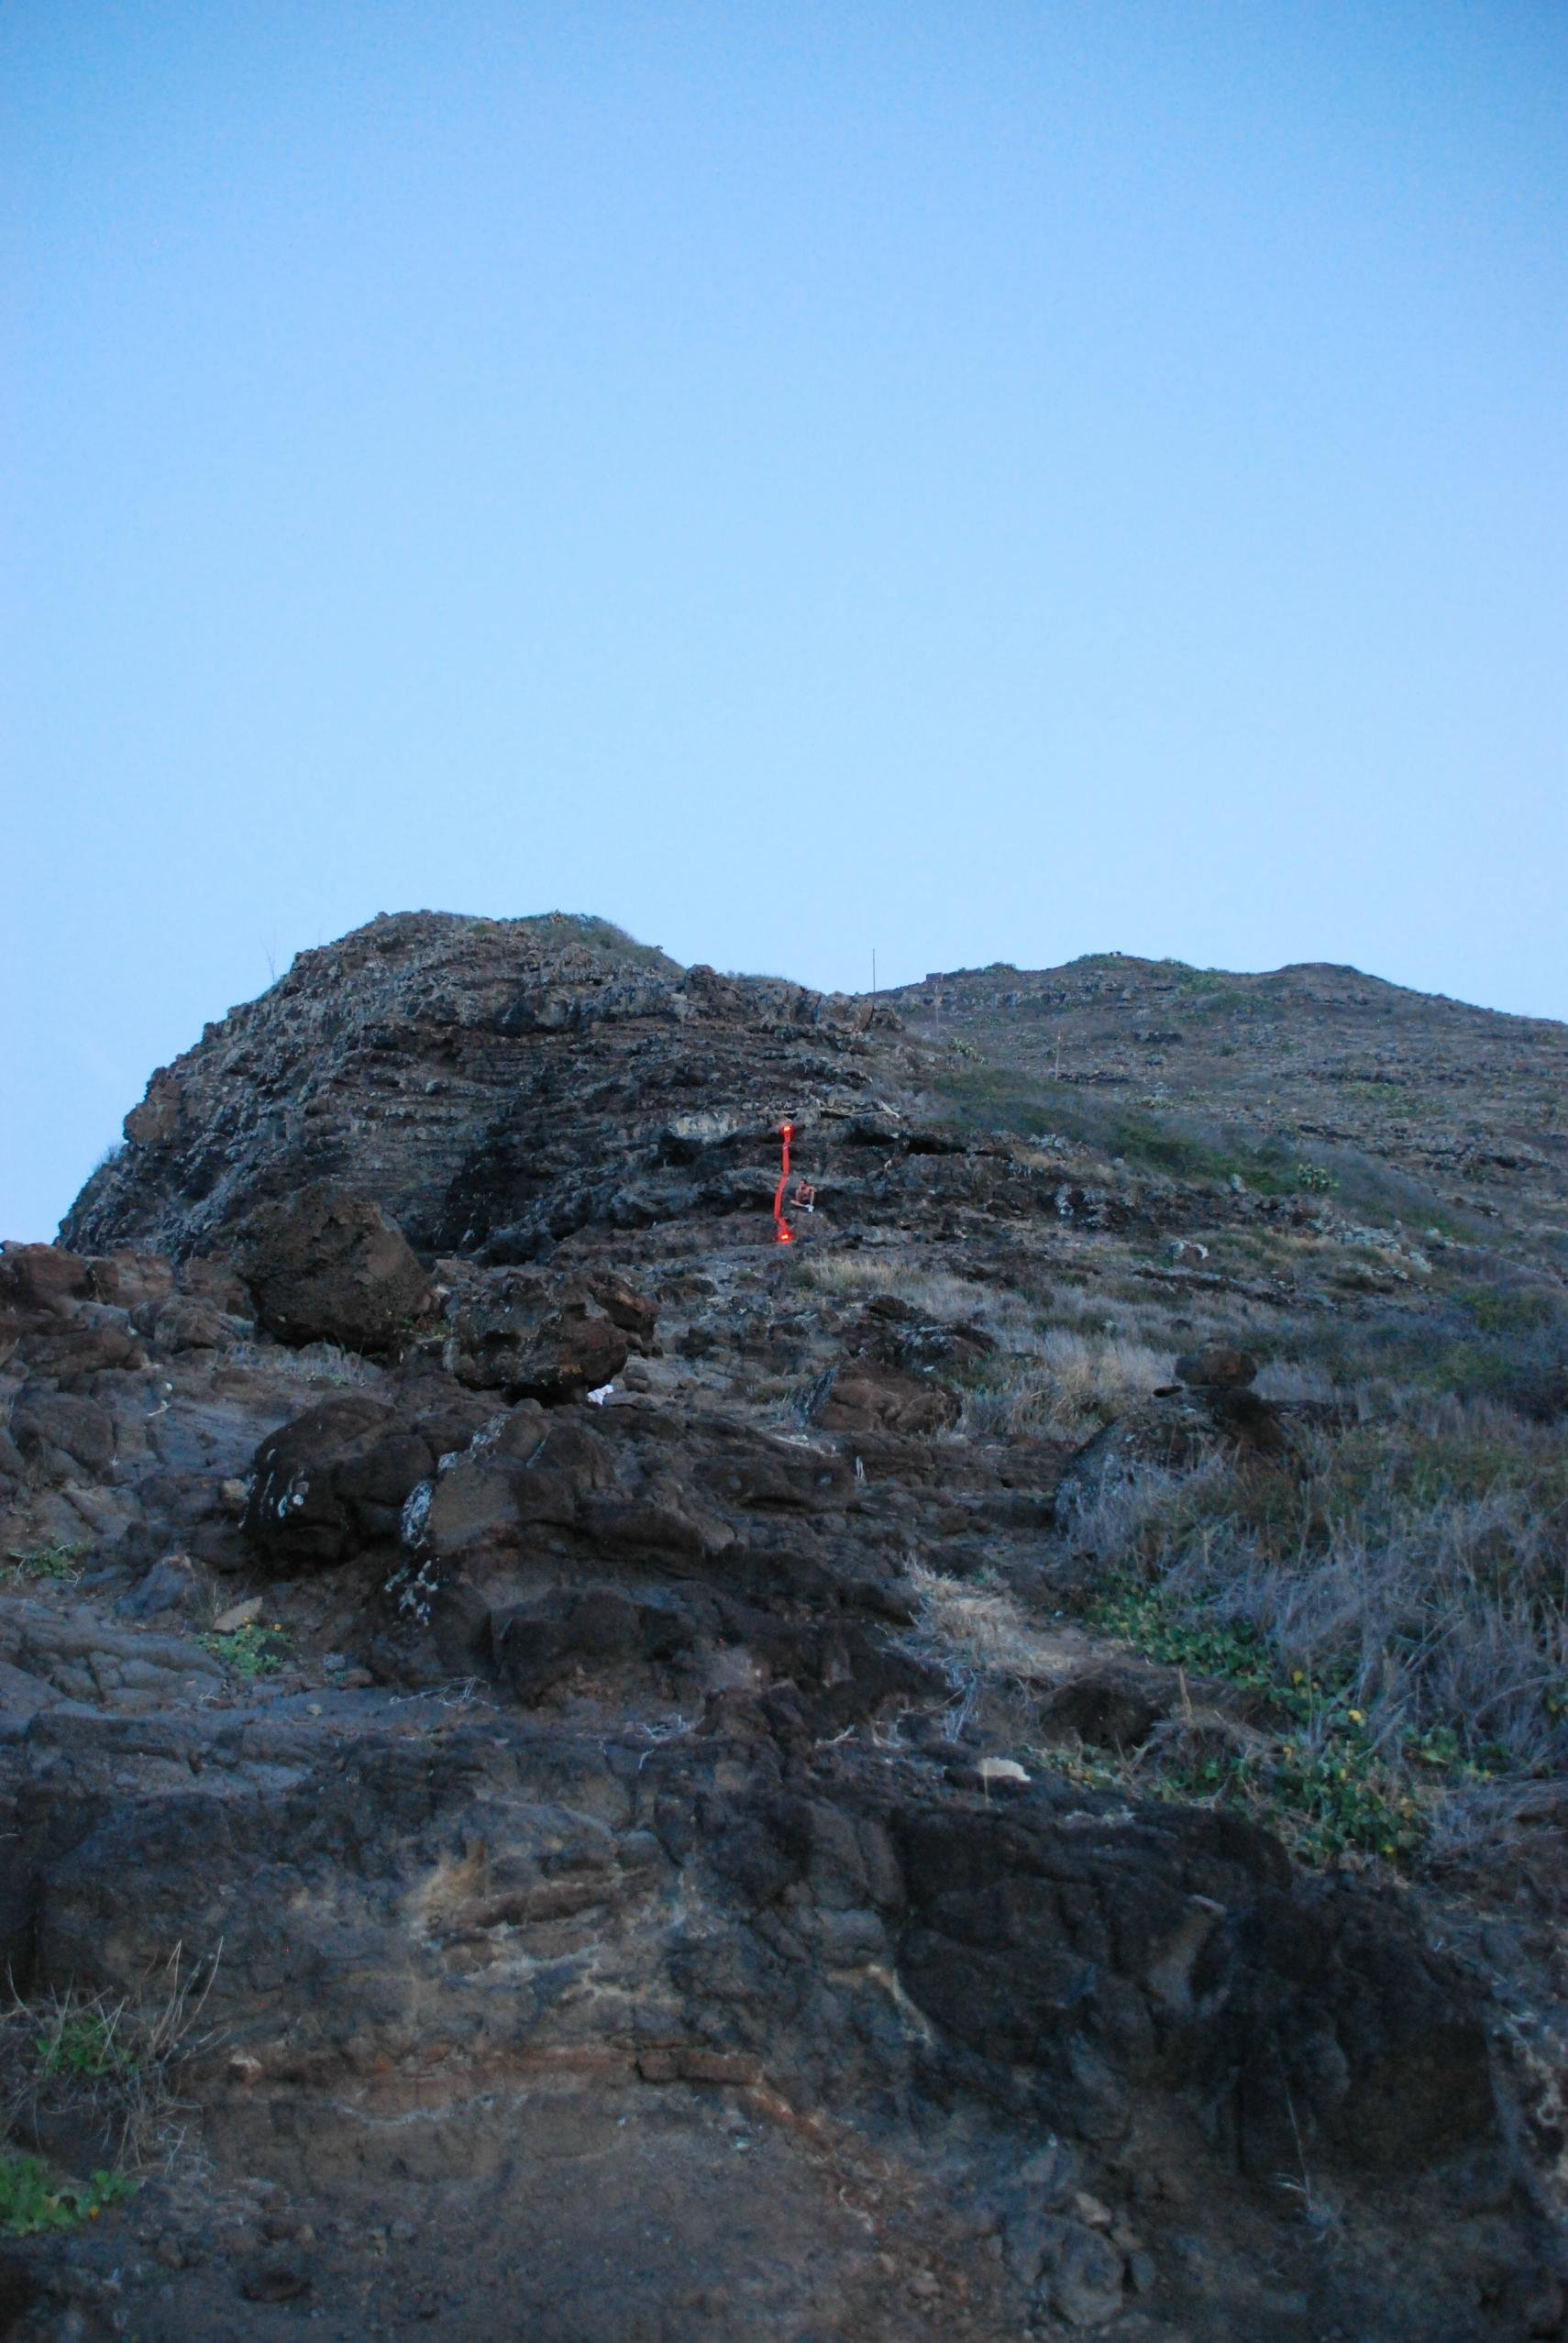 See/Rescue Streamer, Lighted Safety and Rescue Device for Any Terrain - Large by See/Rescue (Image #3)